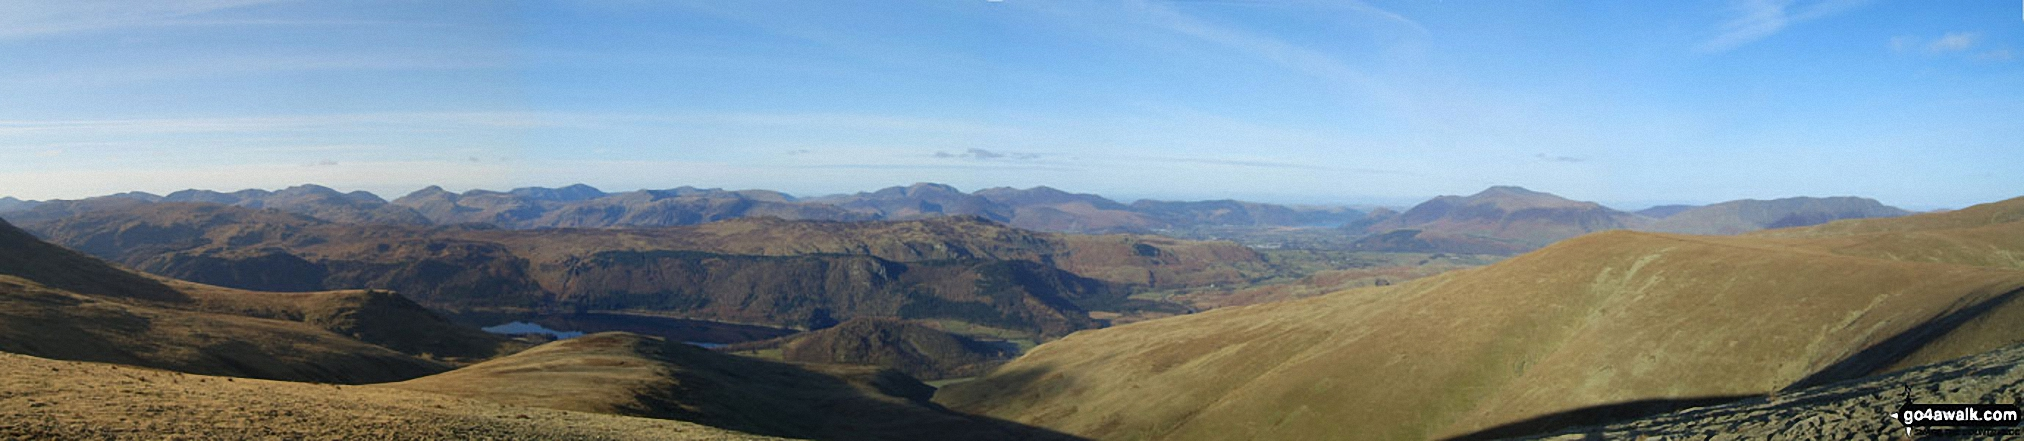 *Panorama looking North West from Stybarrow Dodd